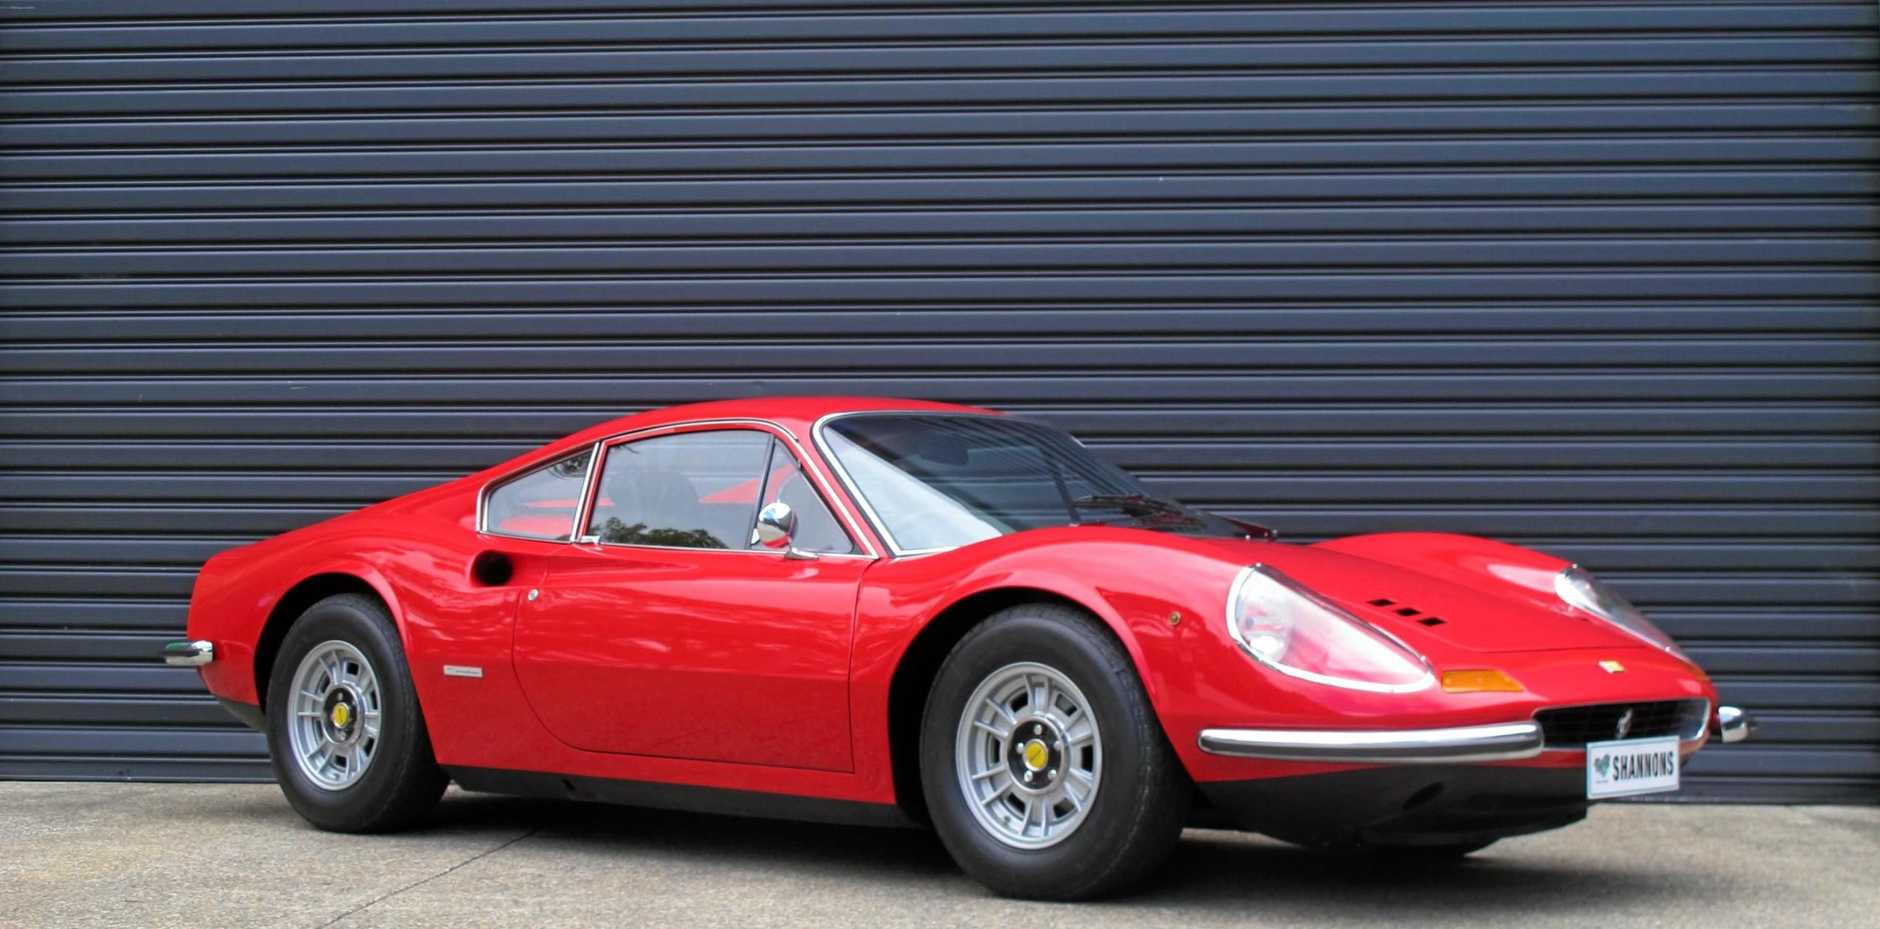 A 1971 Ferrari Dino 246 GT Coupe sold for an undisclosed amount, but within the $620,000-$680,000 guiding range.